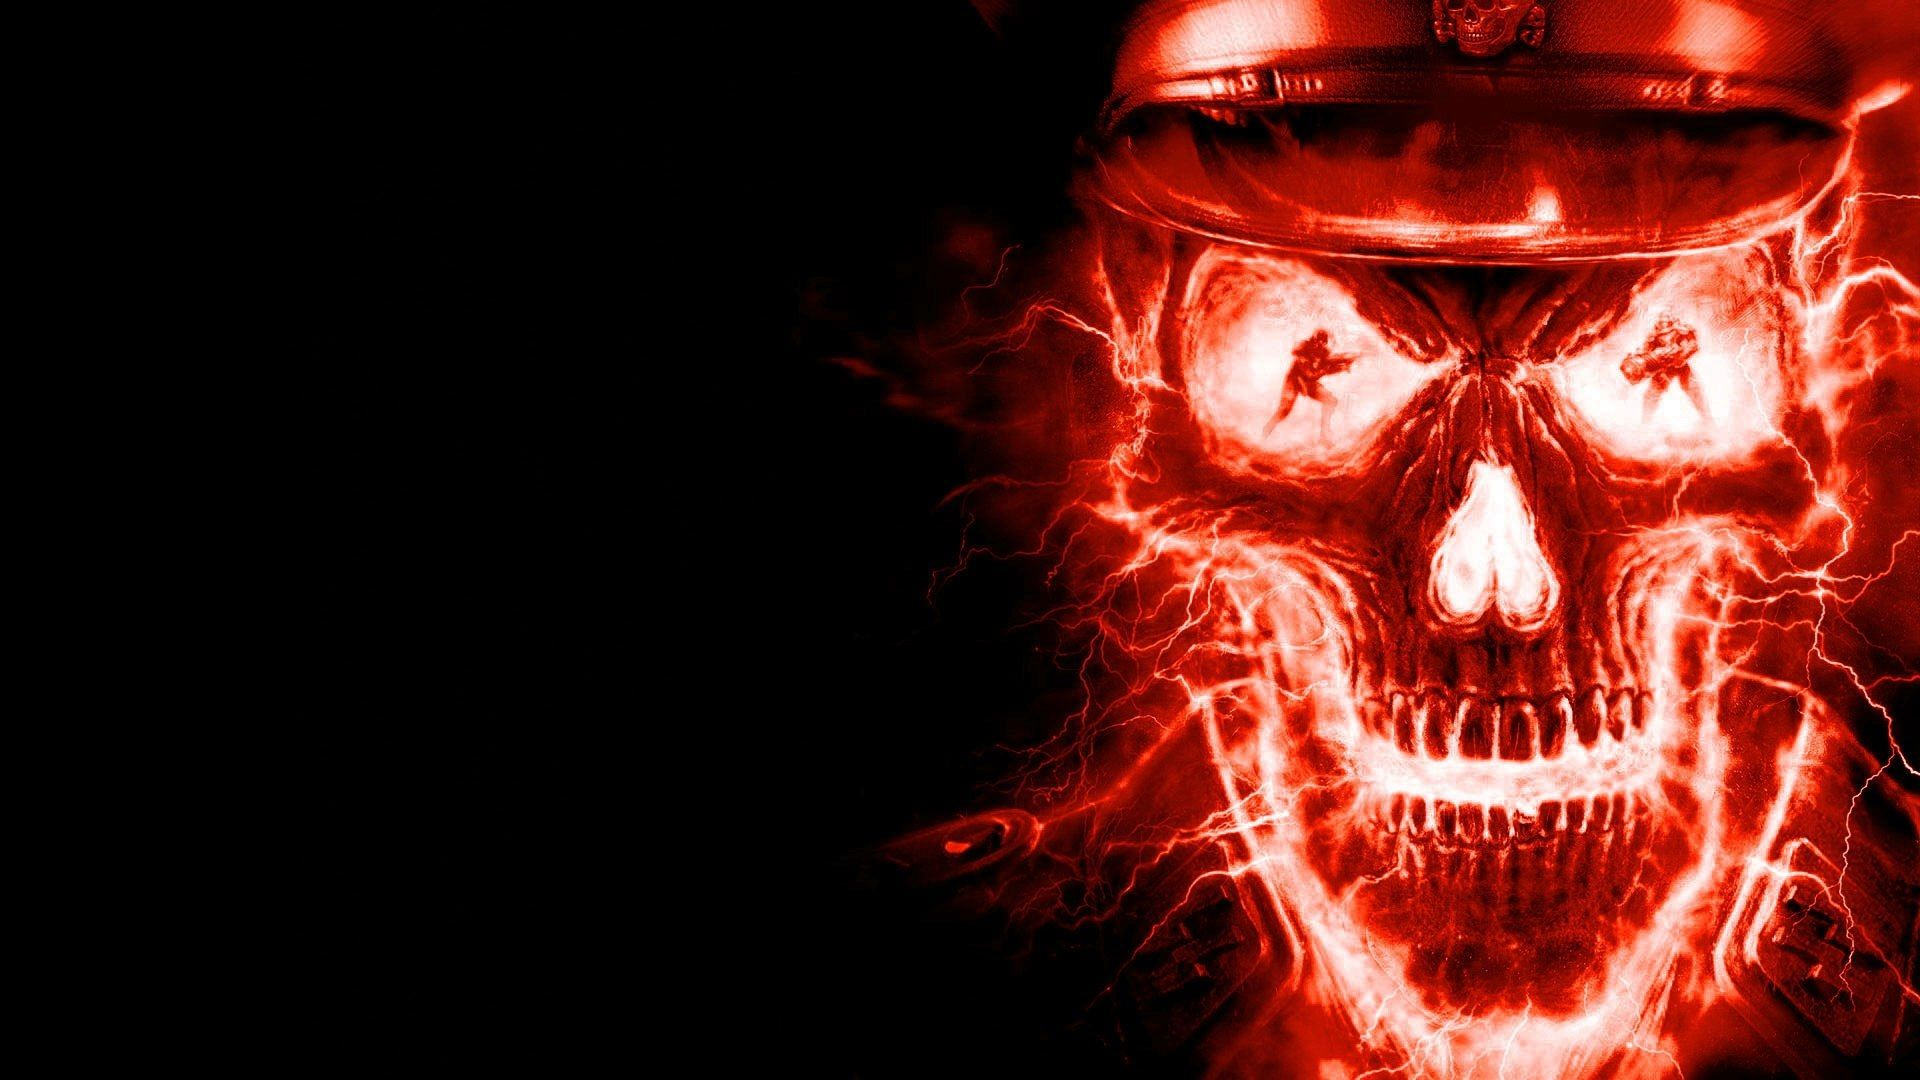 Fire Skull Wallpaper Free Download High 1920x1080px Music Skull